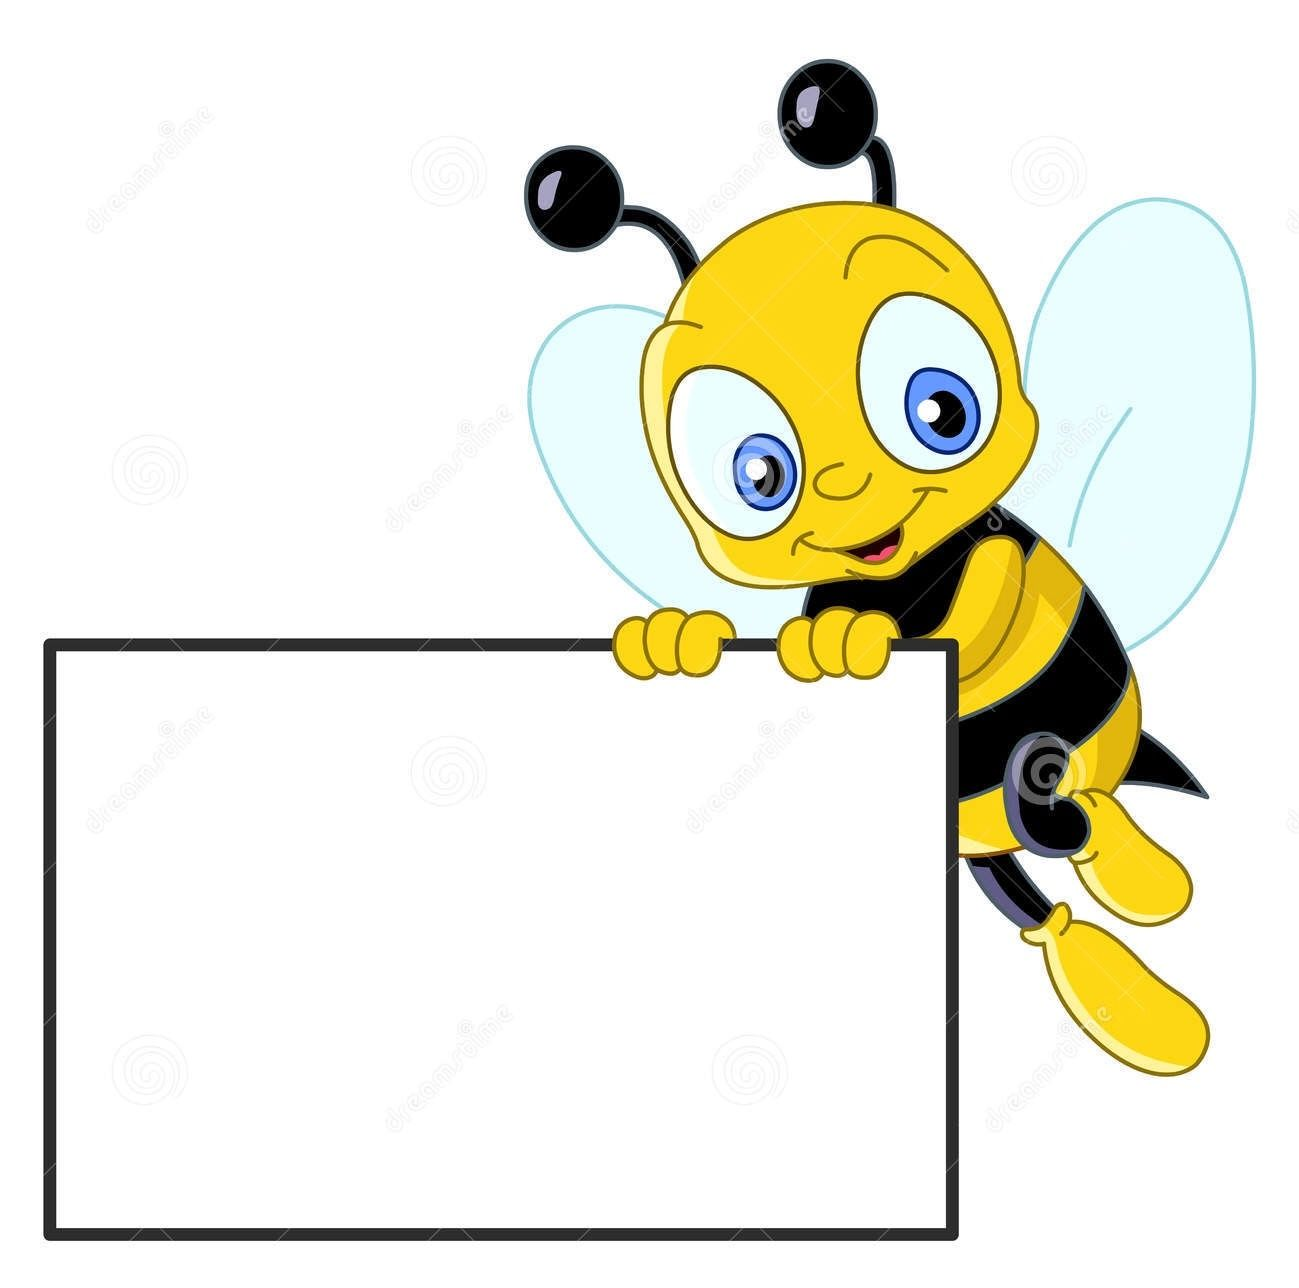 Bee with a banner clipart graphic freeuse library Bumblebee clipart banner, Bumblebee banner Transparent FREE for ... graphic freeuse library